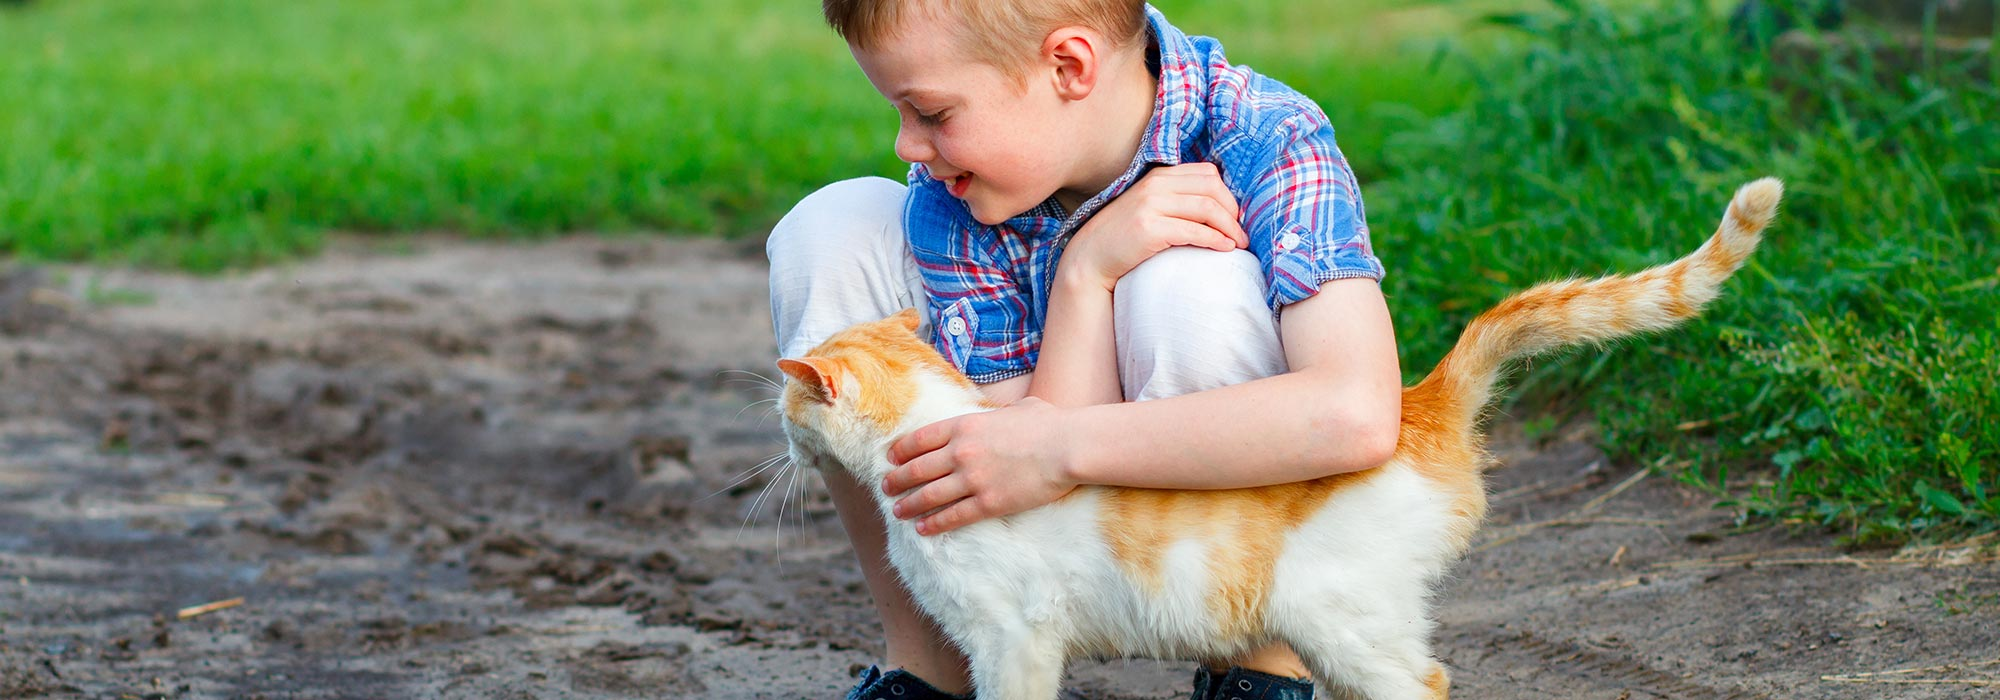 Boy petting Cat